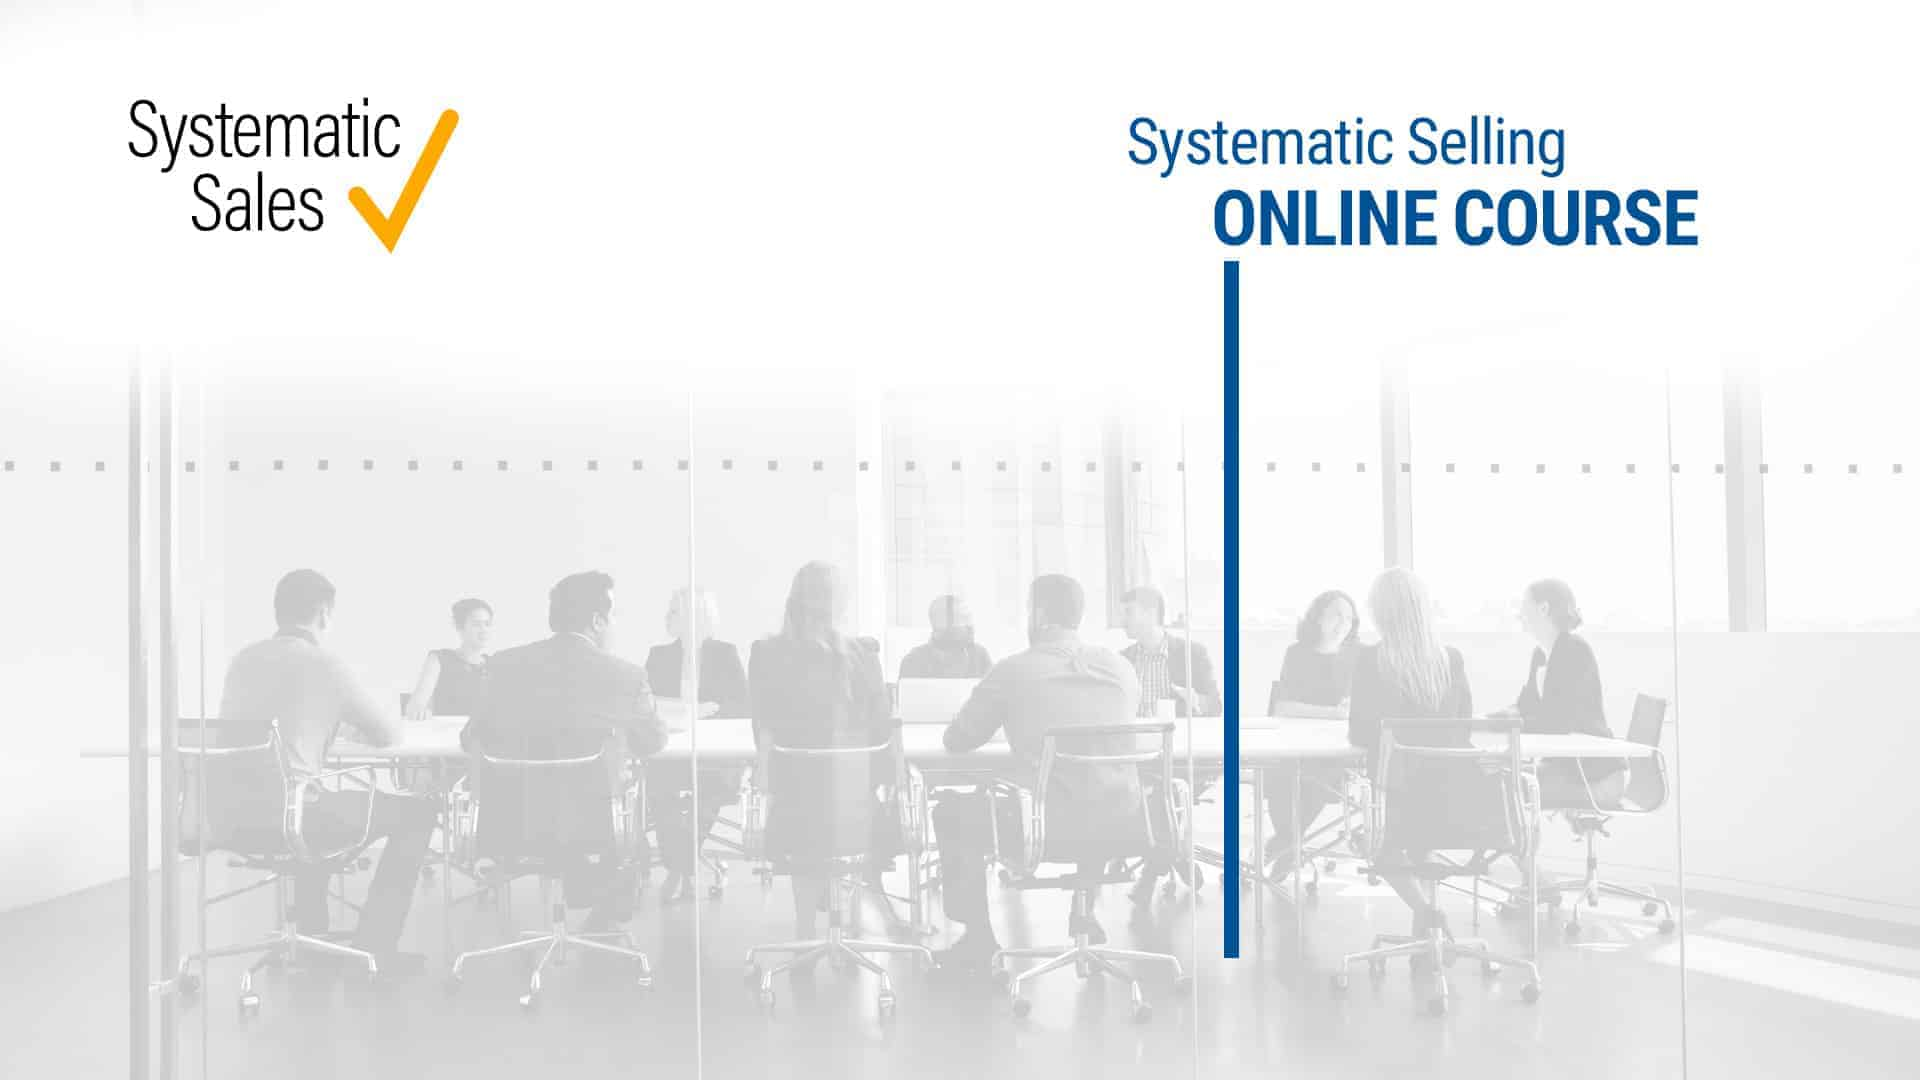 Systematic Selling Online Course & Game